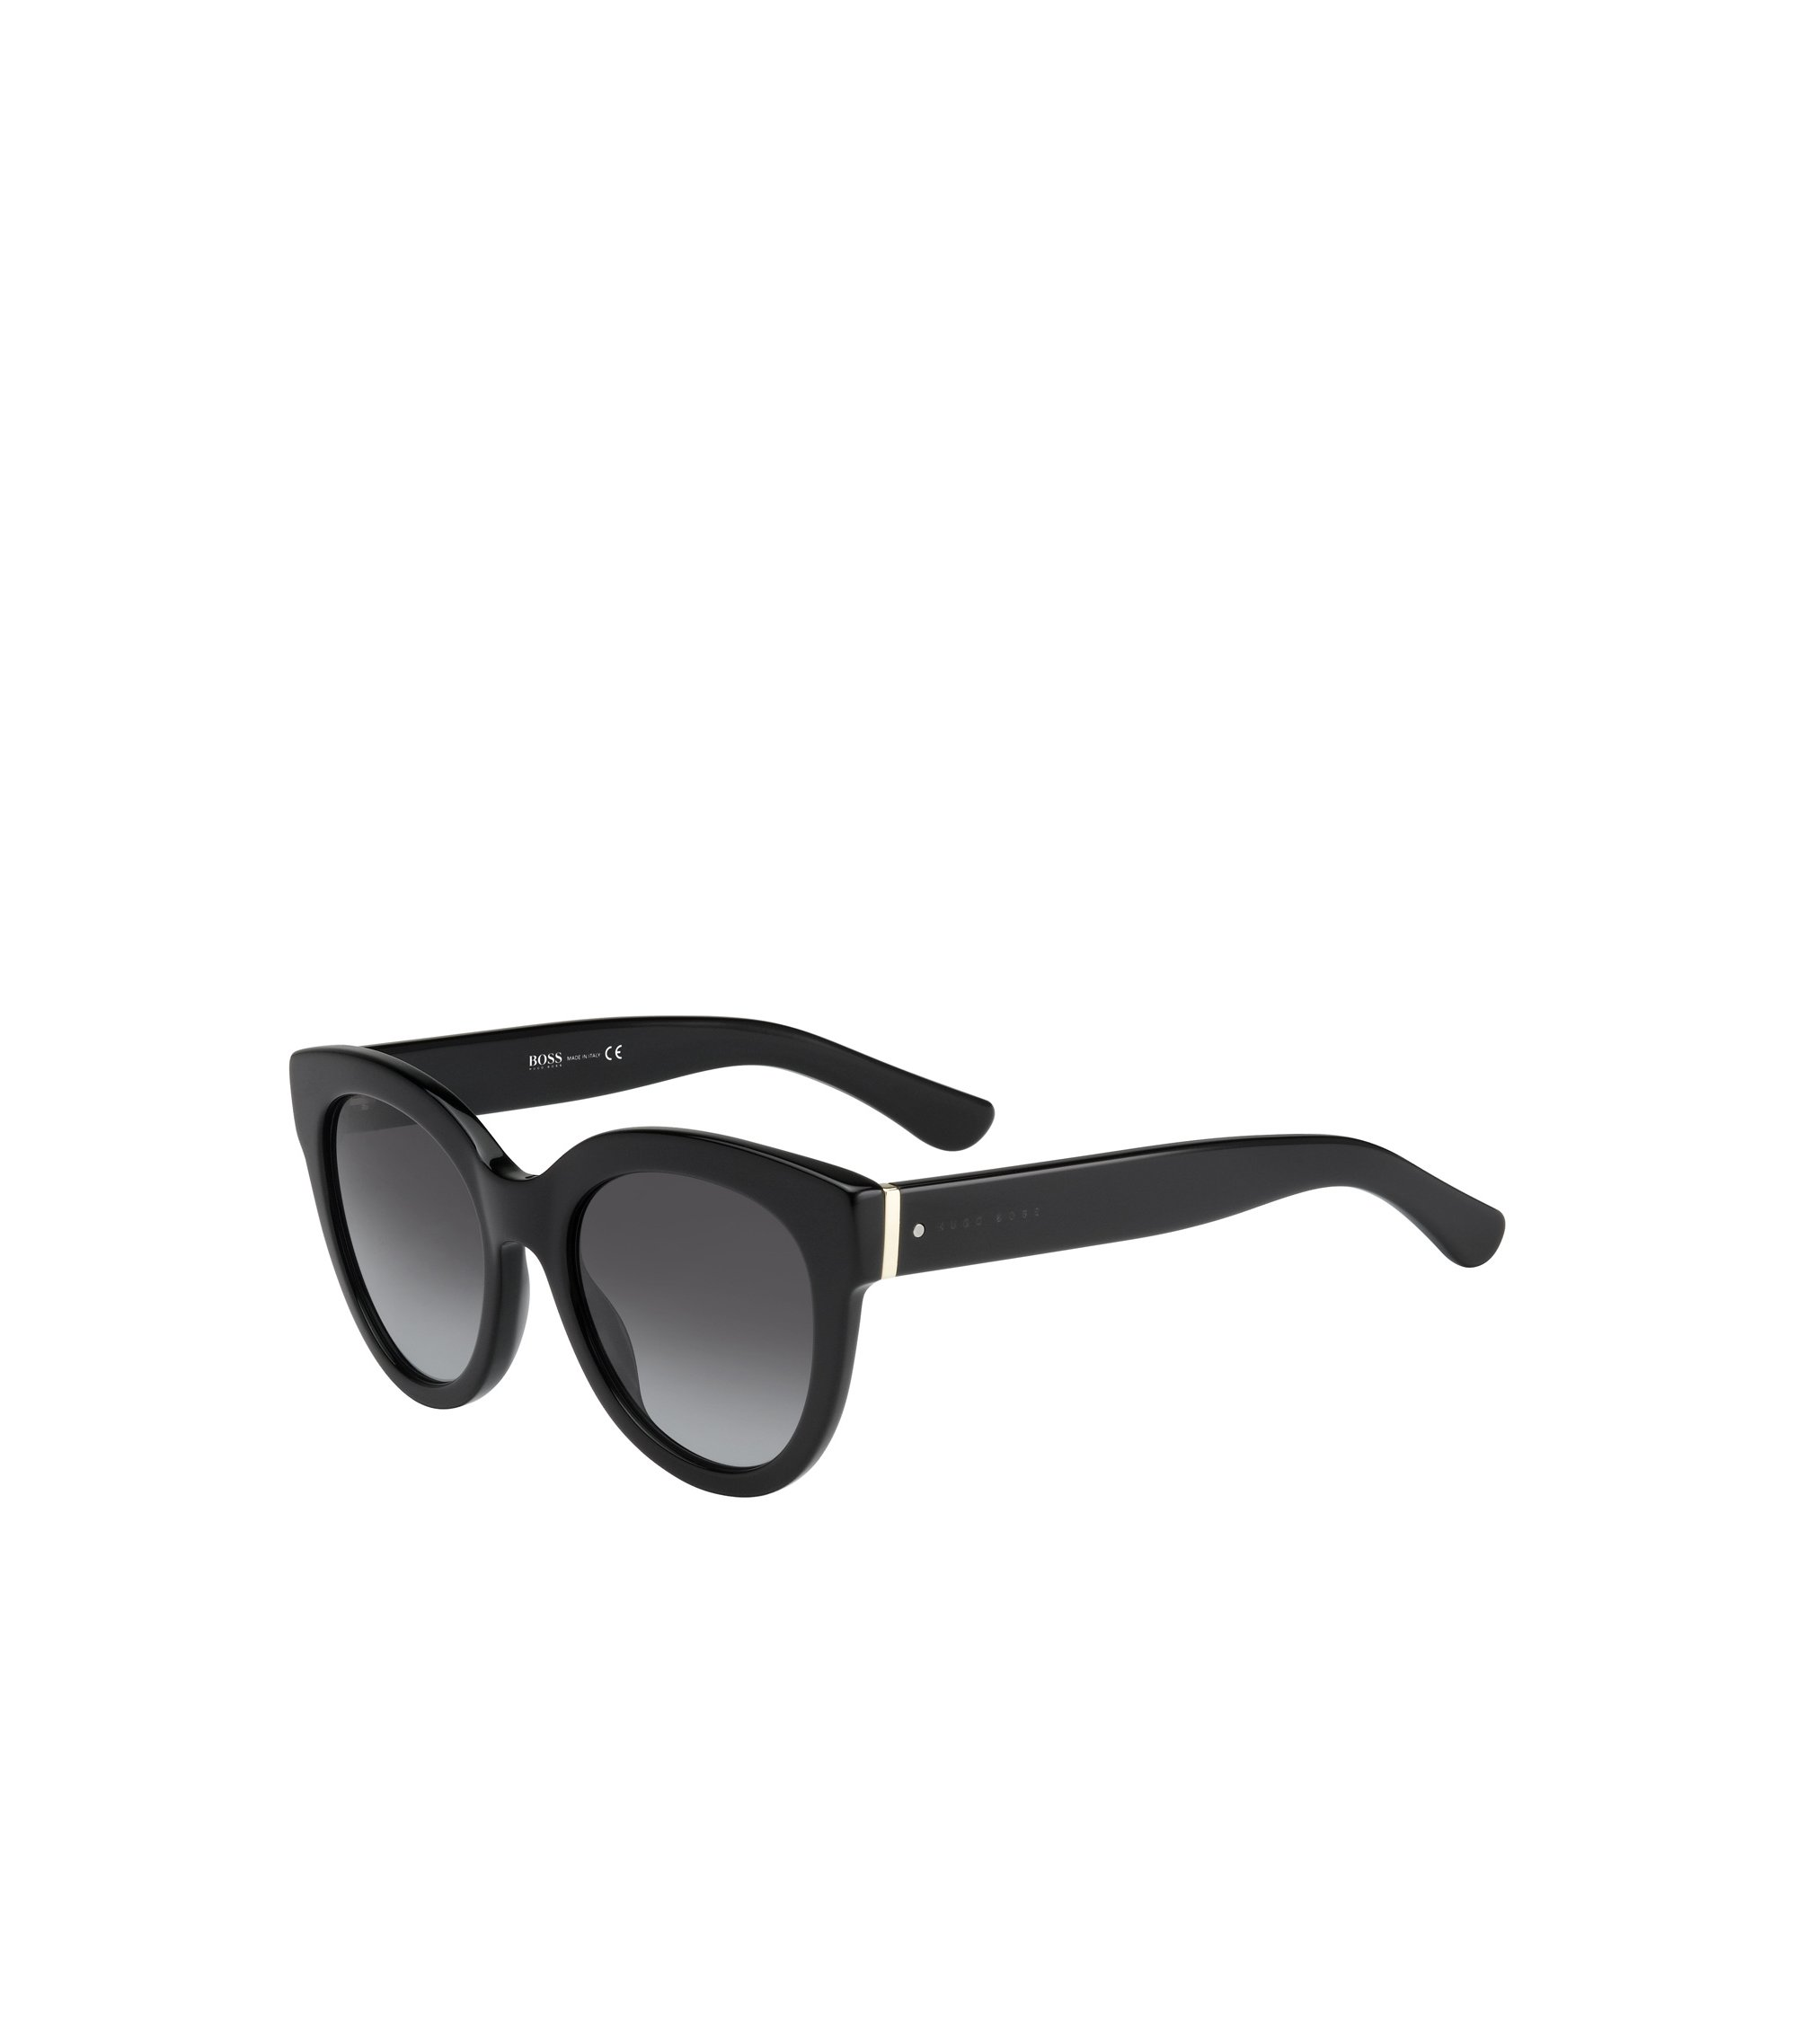 Black Gradient Lens Cateye Sunglasses | BOSS 0675S, Assorted-Pre-Pack